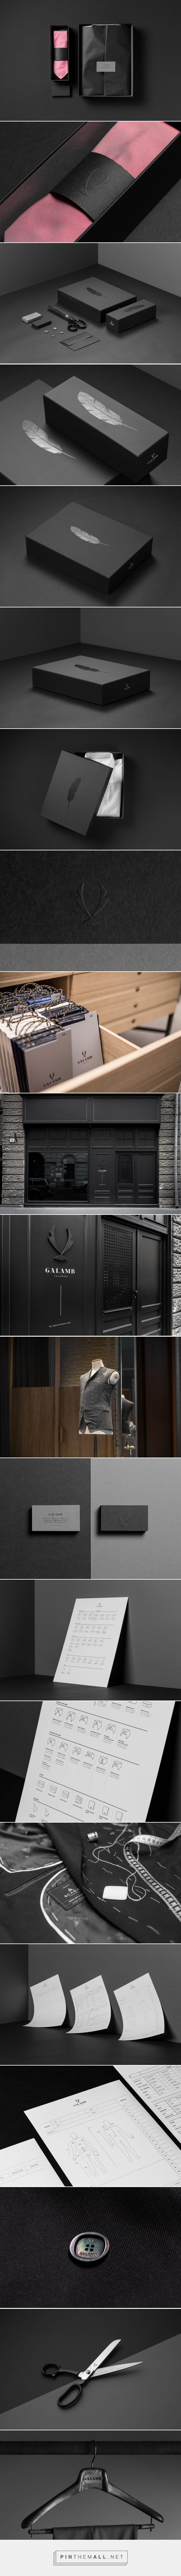 Galamb Tailoring  - Packaging of the World - Creative Package Design Gallery - http://www.packagingoftheworld.com/2016/08/galamb-tailoring.html